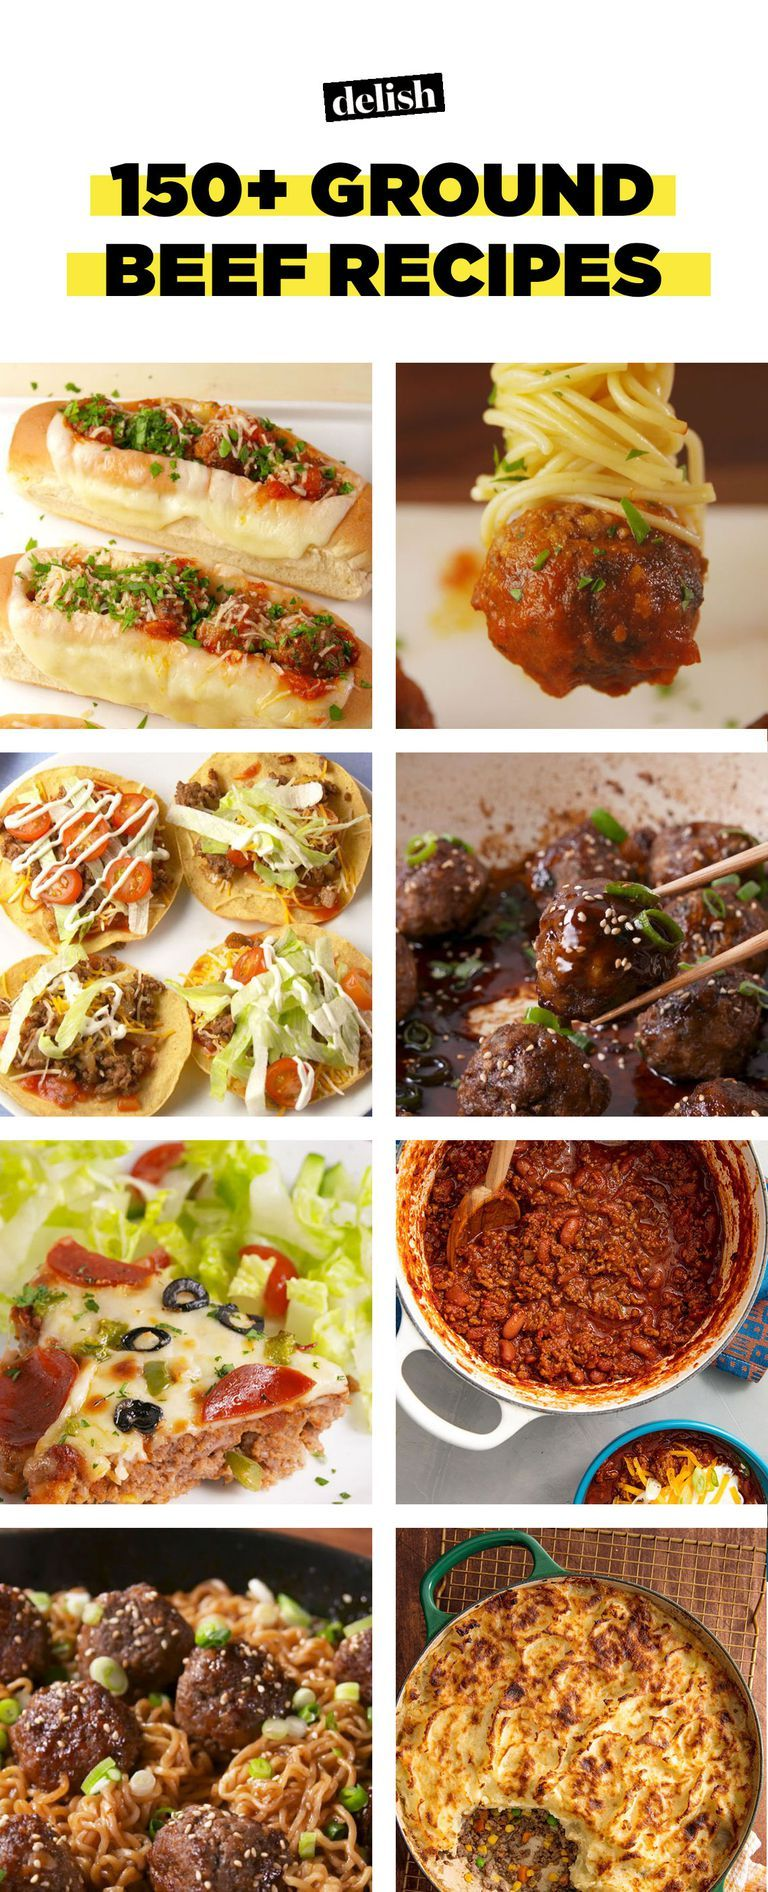 150 Easy Ground Beef Recipes What To Make With Ground Beef Delish Com Ground Beef Recipes Dinner With Ground Beef Cooking With Ground Beef